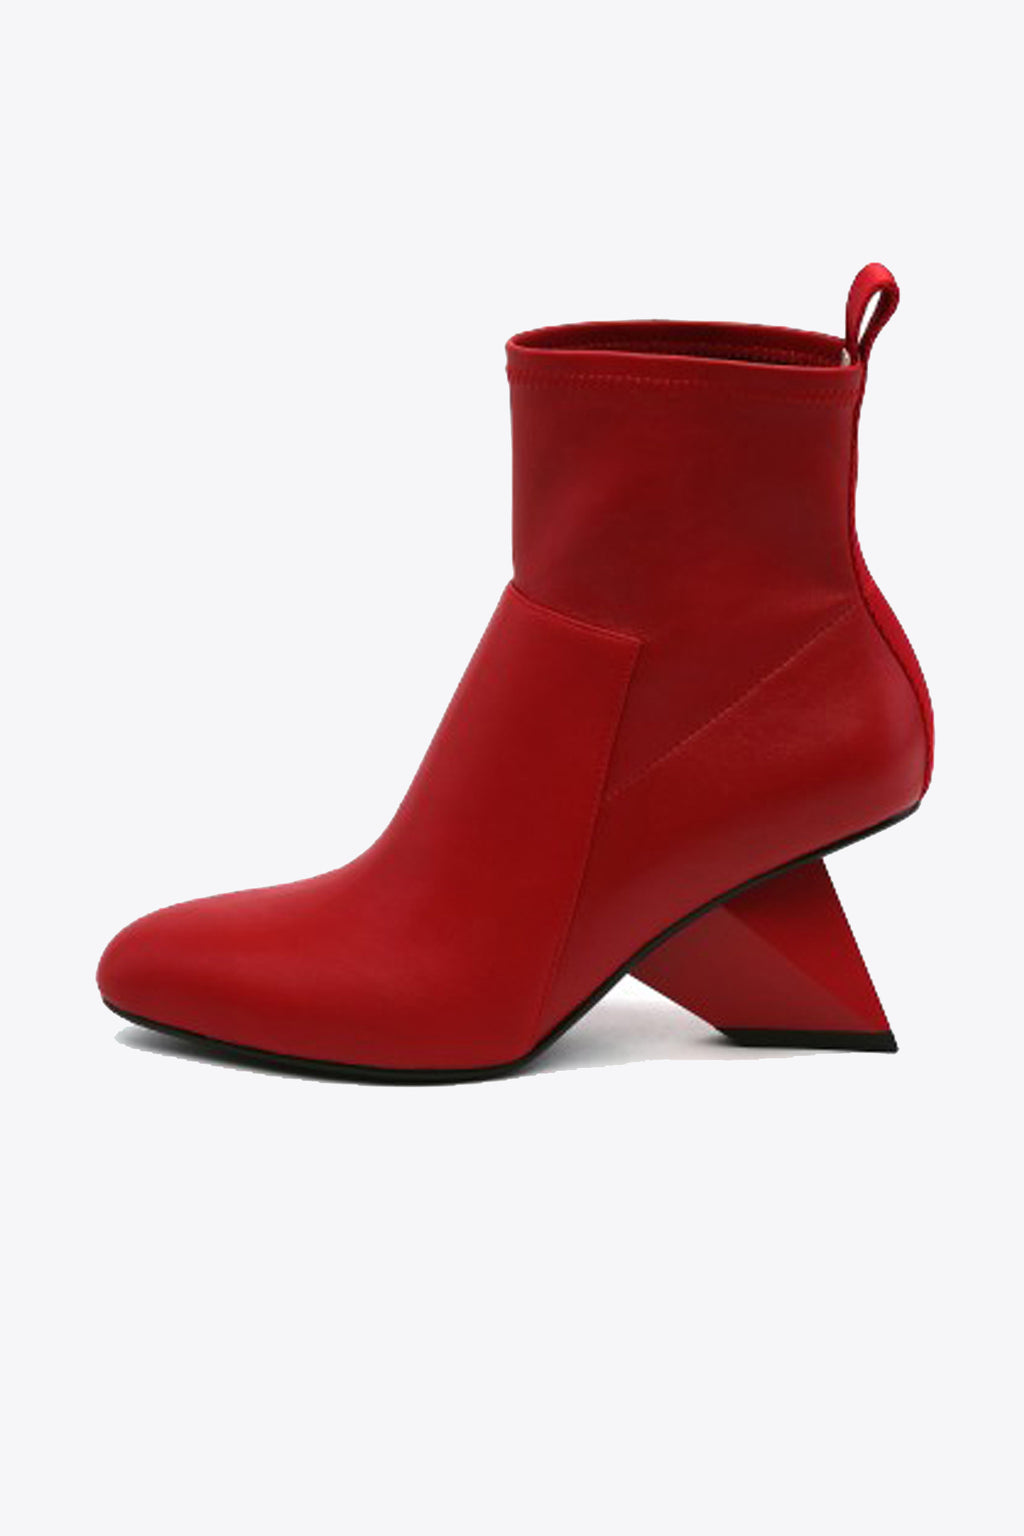 SALE United Nude Rockit Pure Bootie in Deep Red